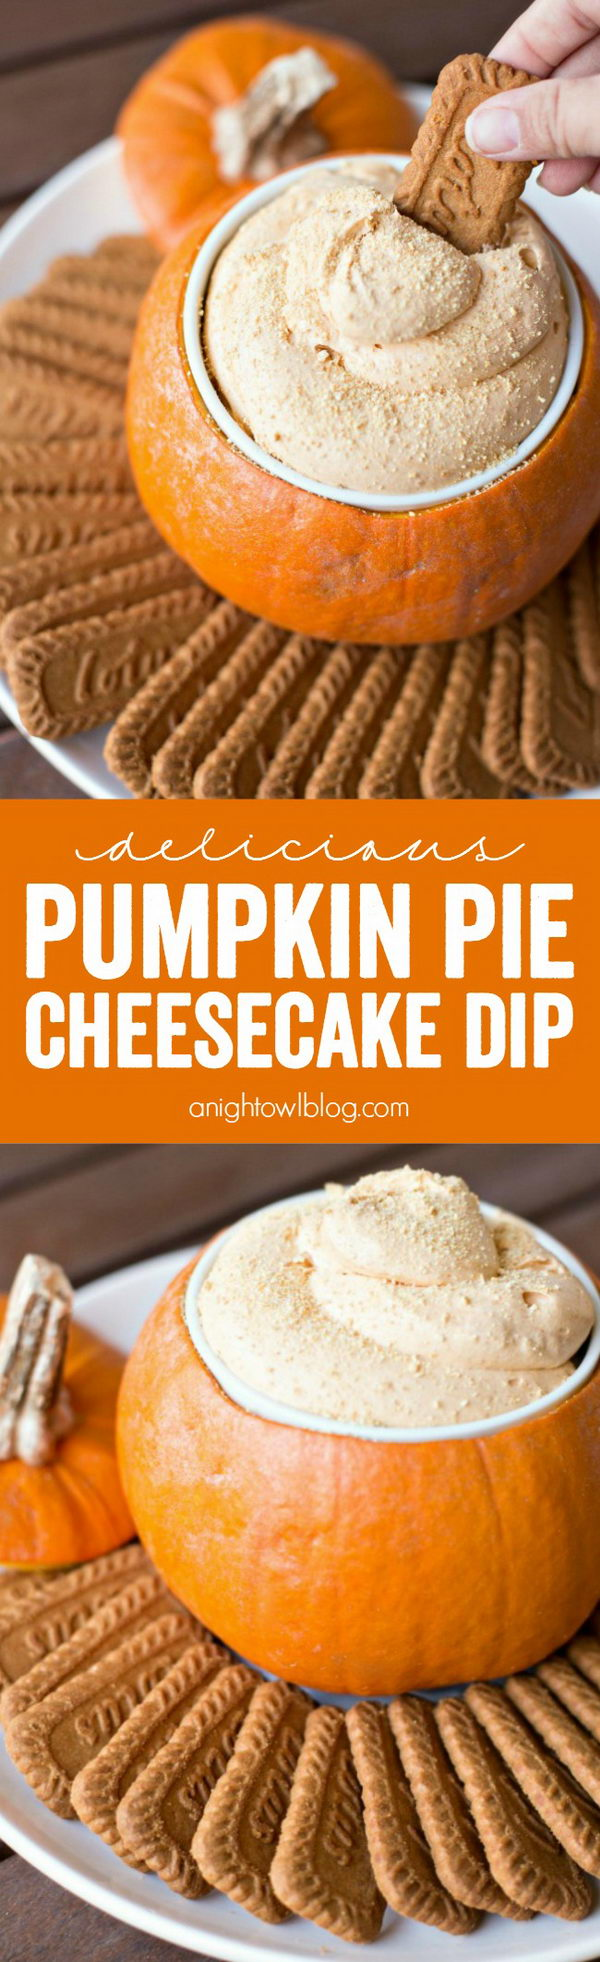 Pumpkin Pie Cheesecake Dip.